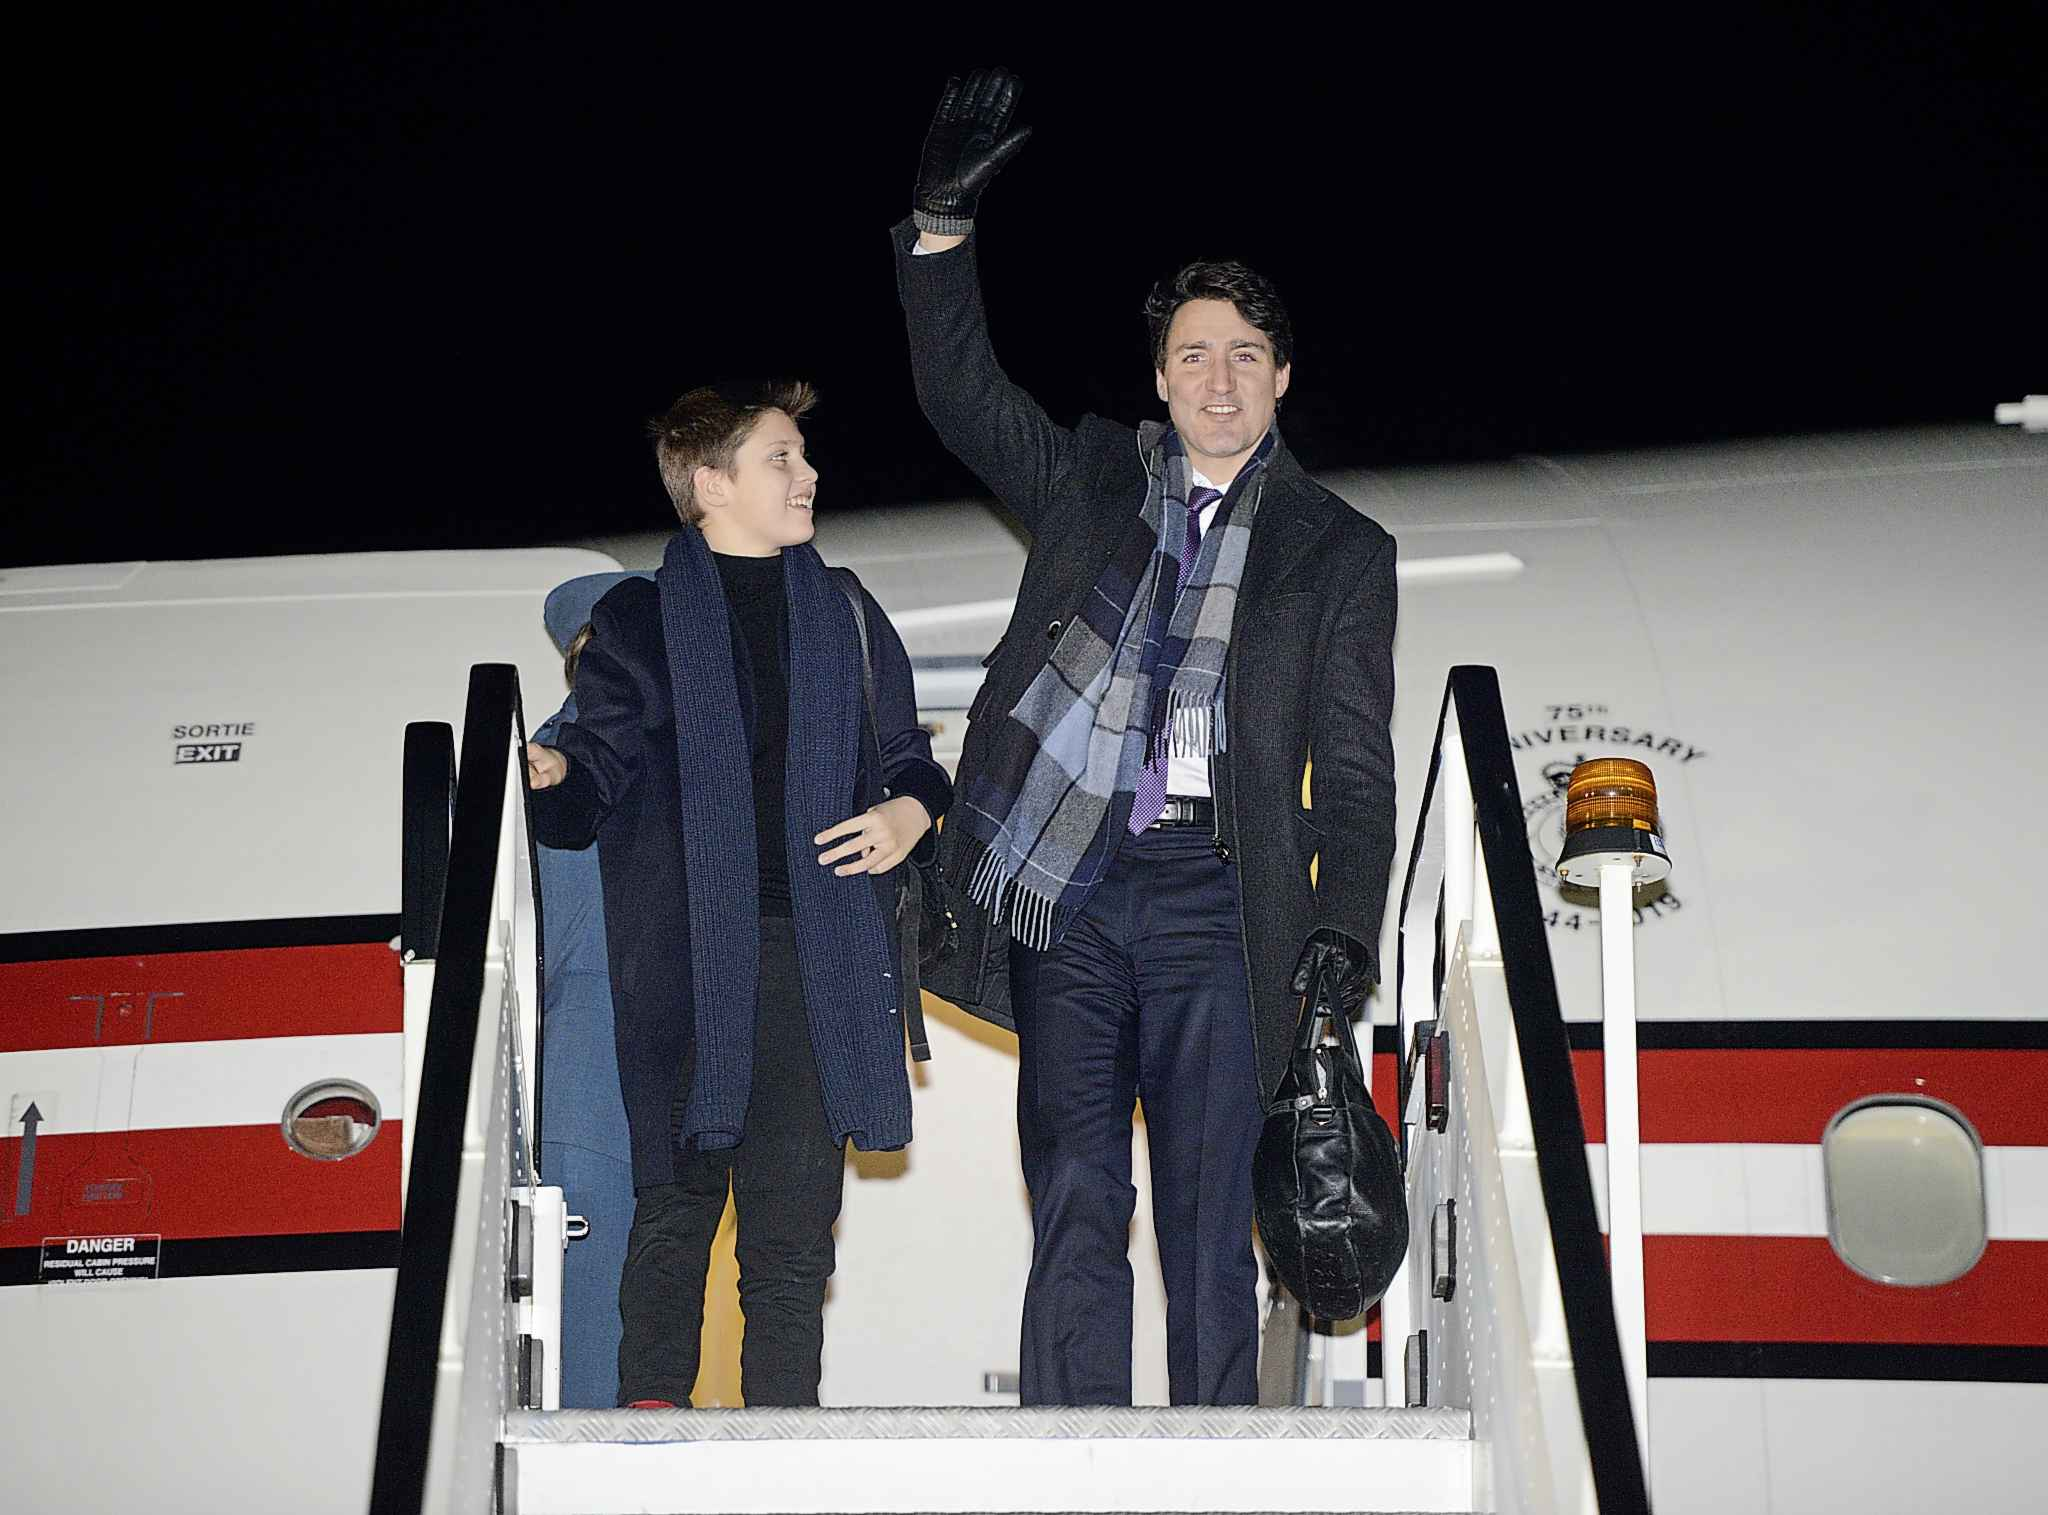 Canadian Prime Minister Justin Trudeau and son Xavier arrive in London for the 2019 NATO summit.